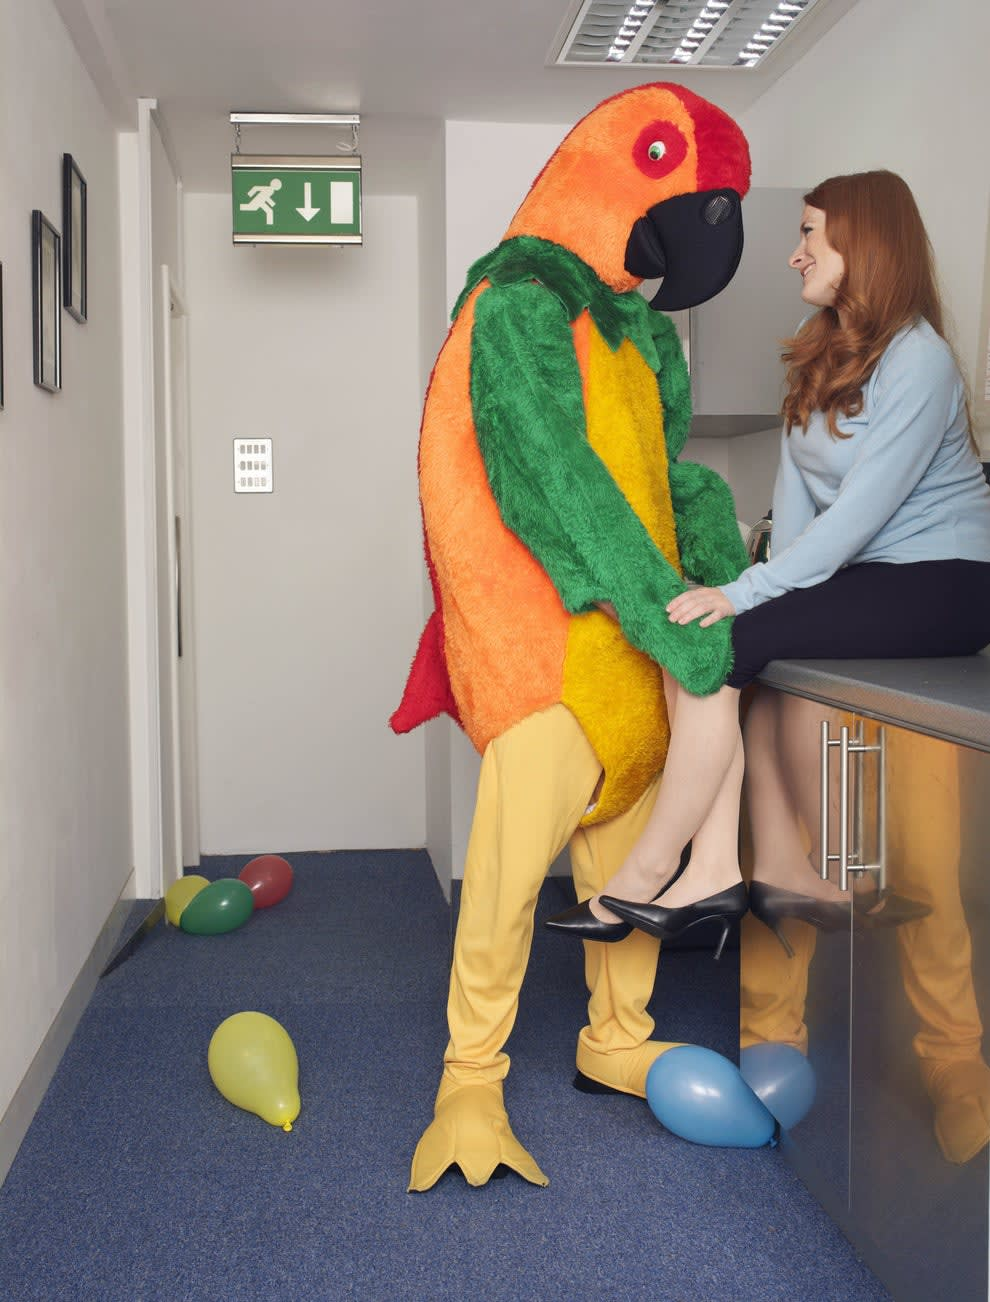 person in a parrot costume flirting with a woman